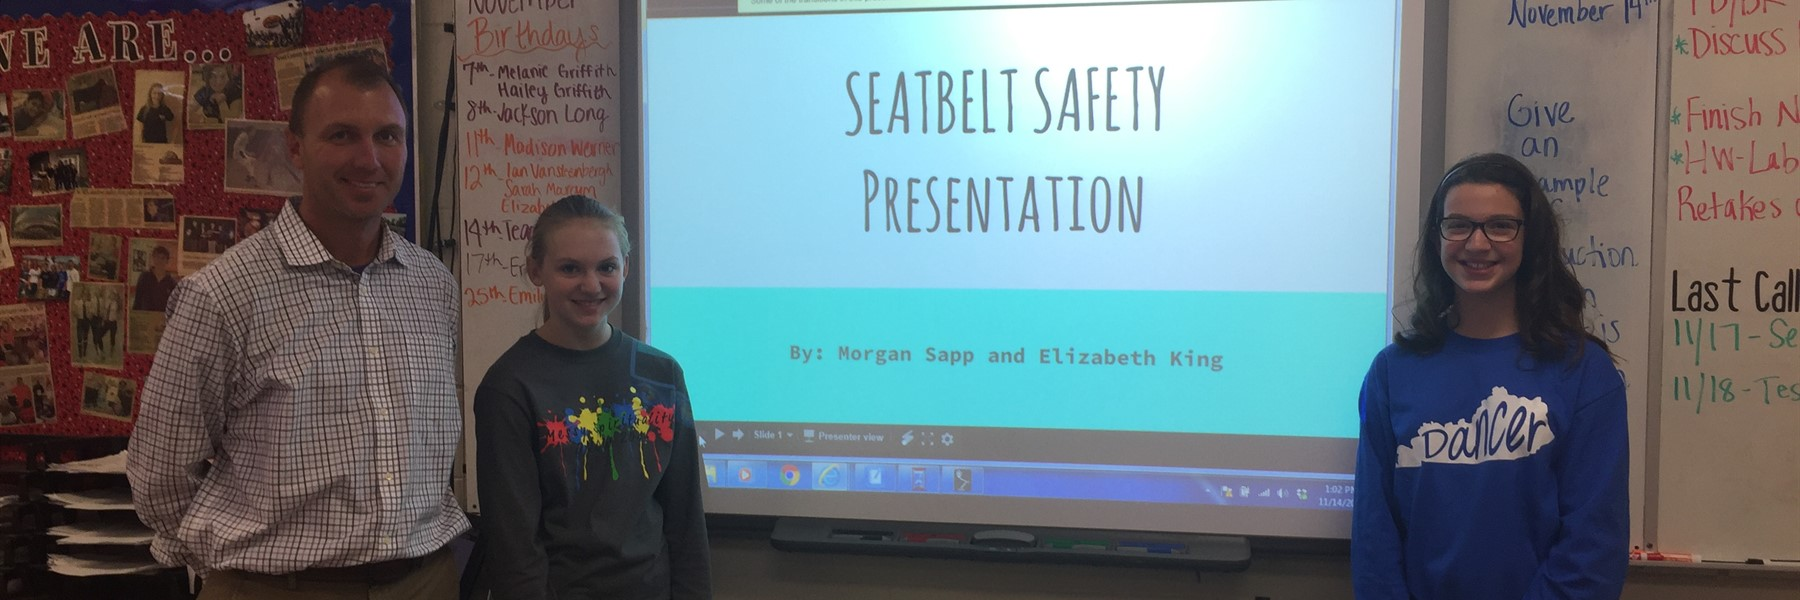 Student project improves safety